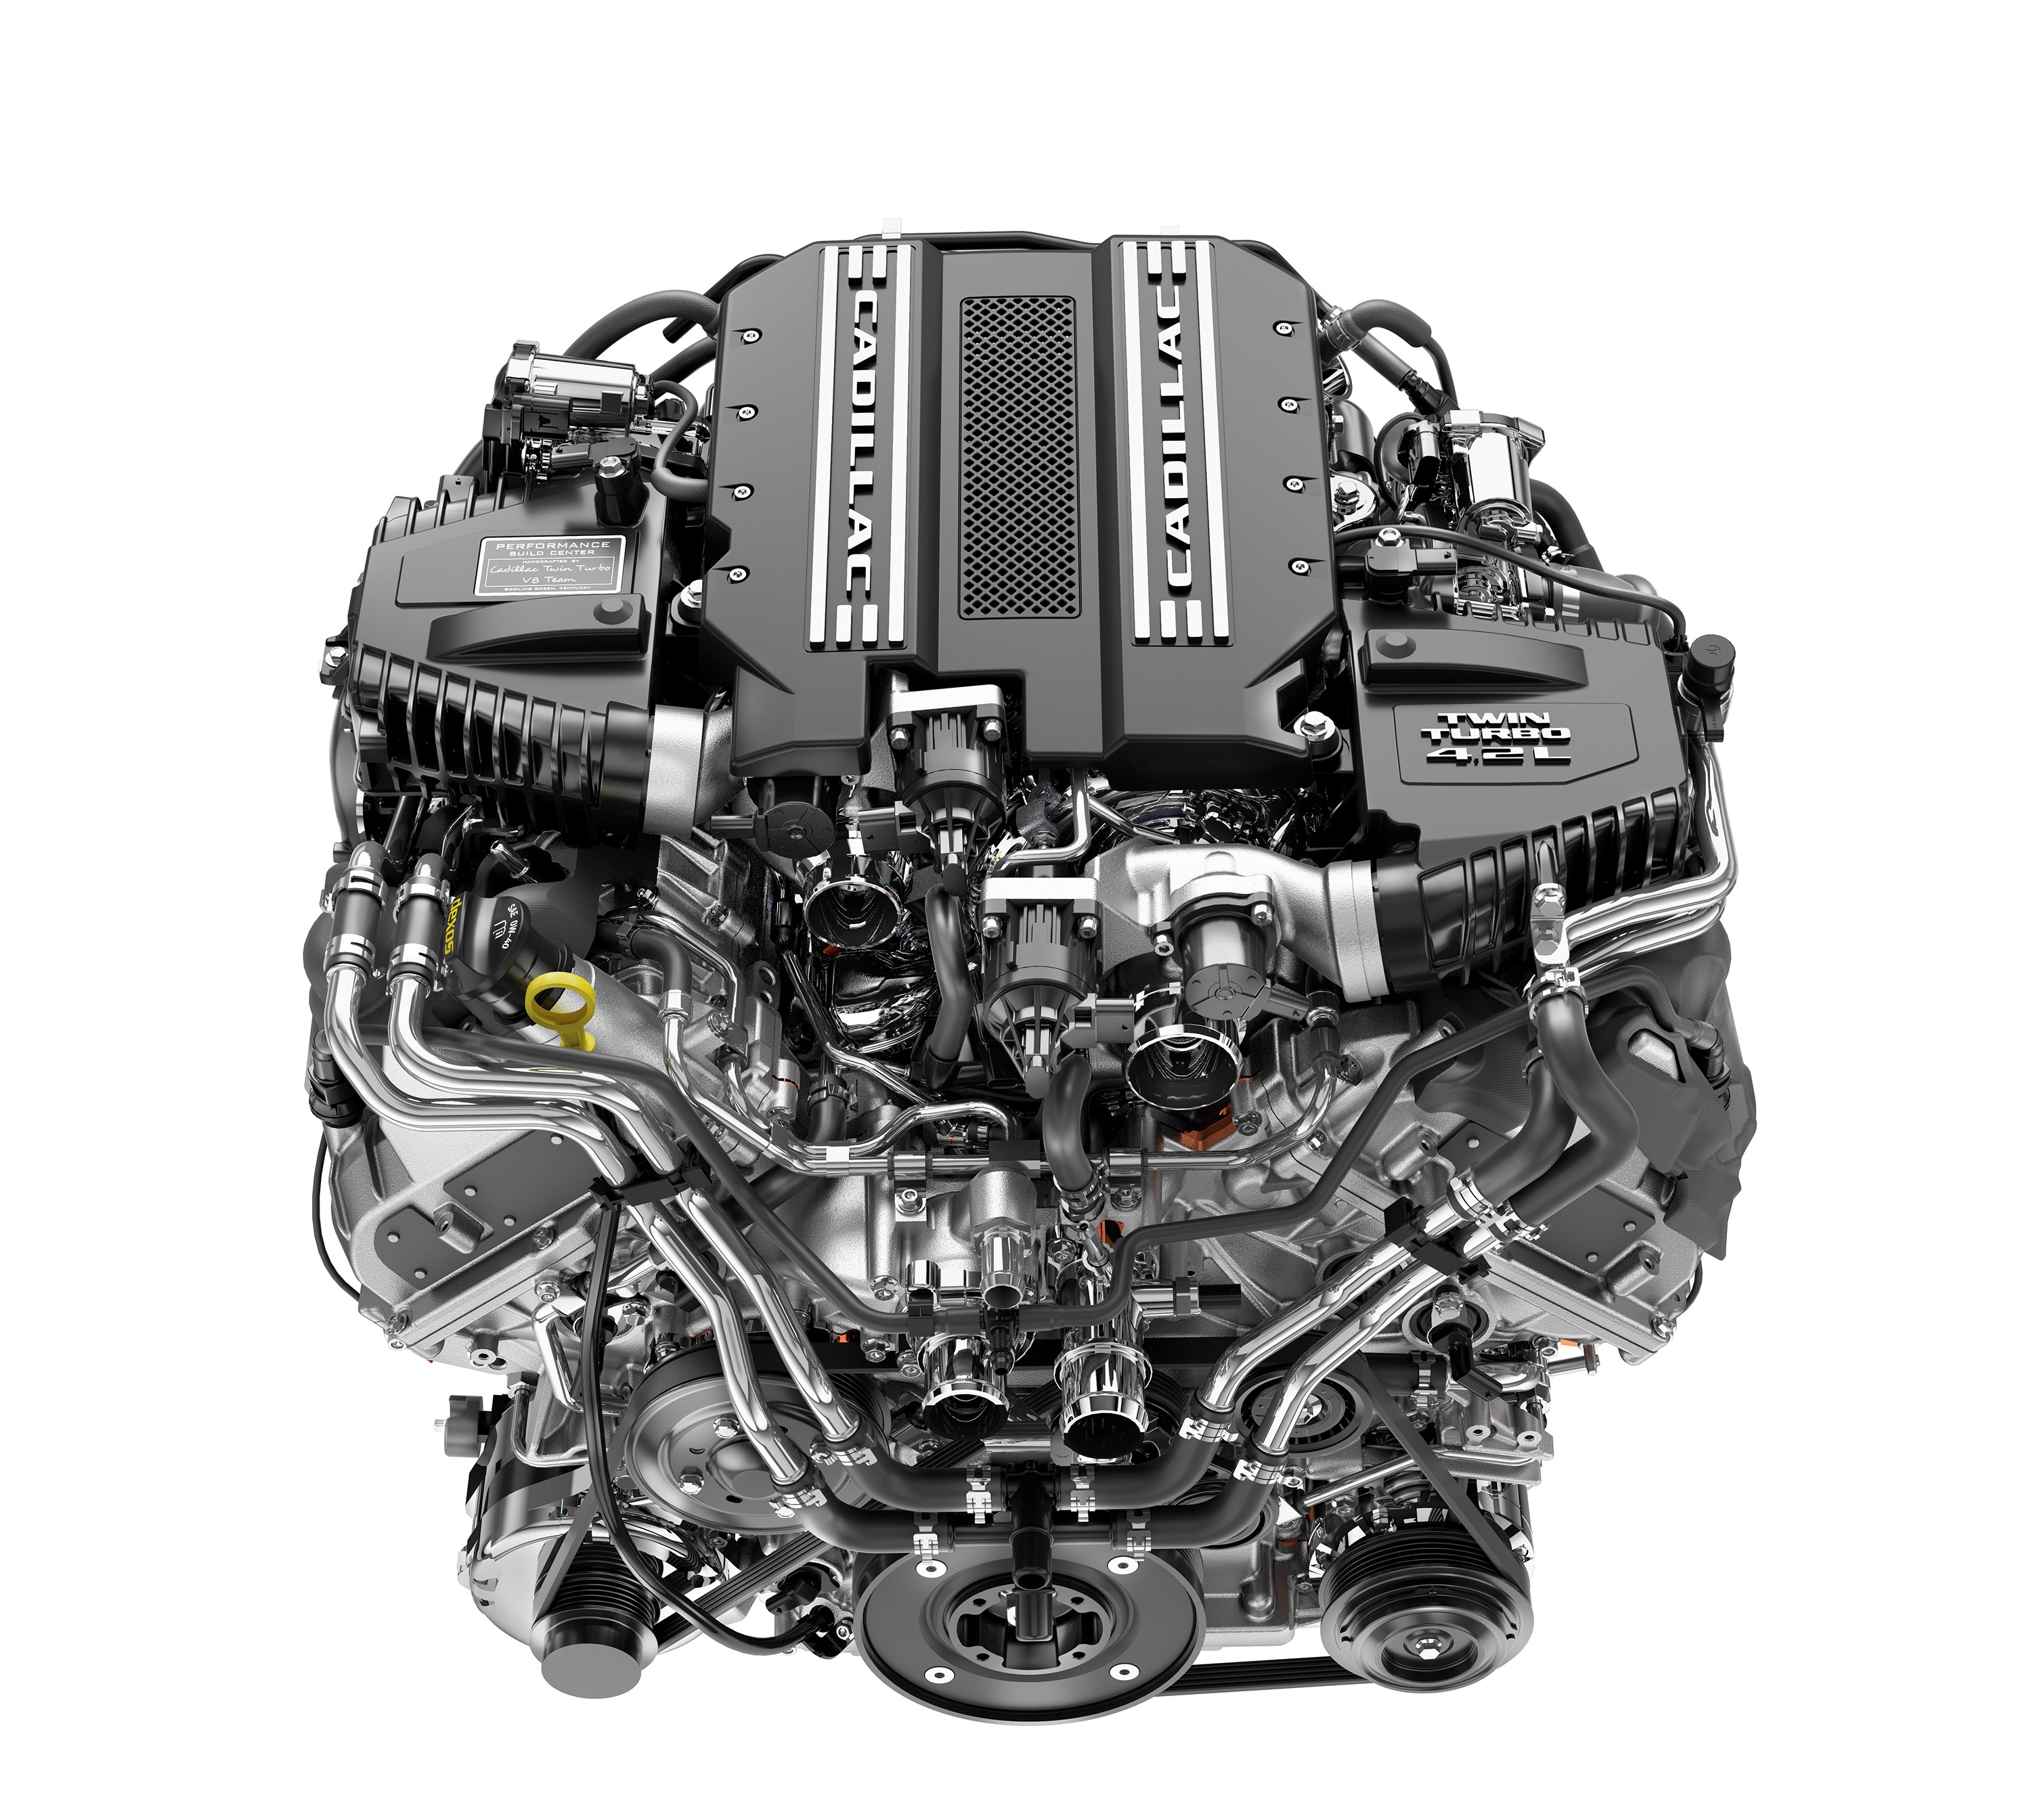 Northstar Engine Diagram the Cadillac V8 is Back In 2019 and More Powerful Than Ever for New Of Northstar Engine Diagram Cadillac V8 Engine